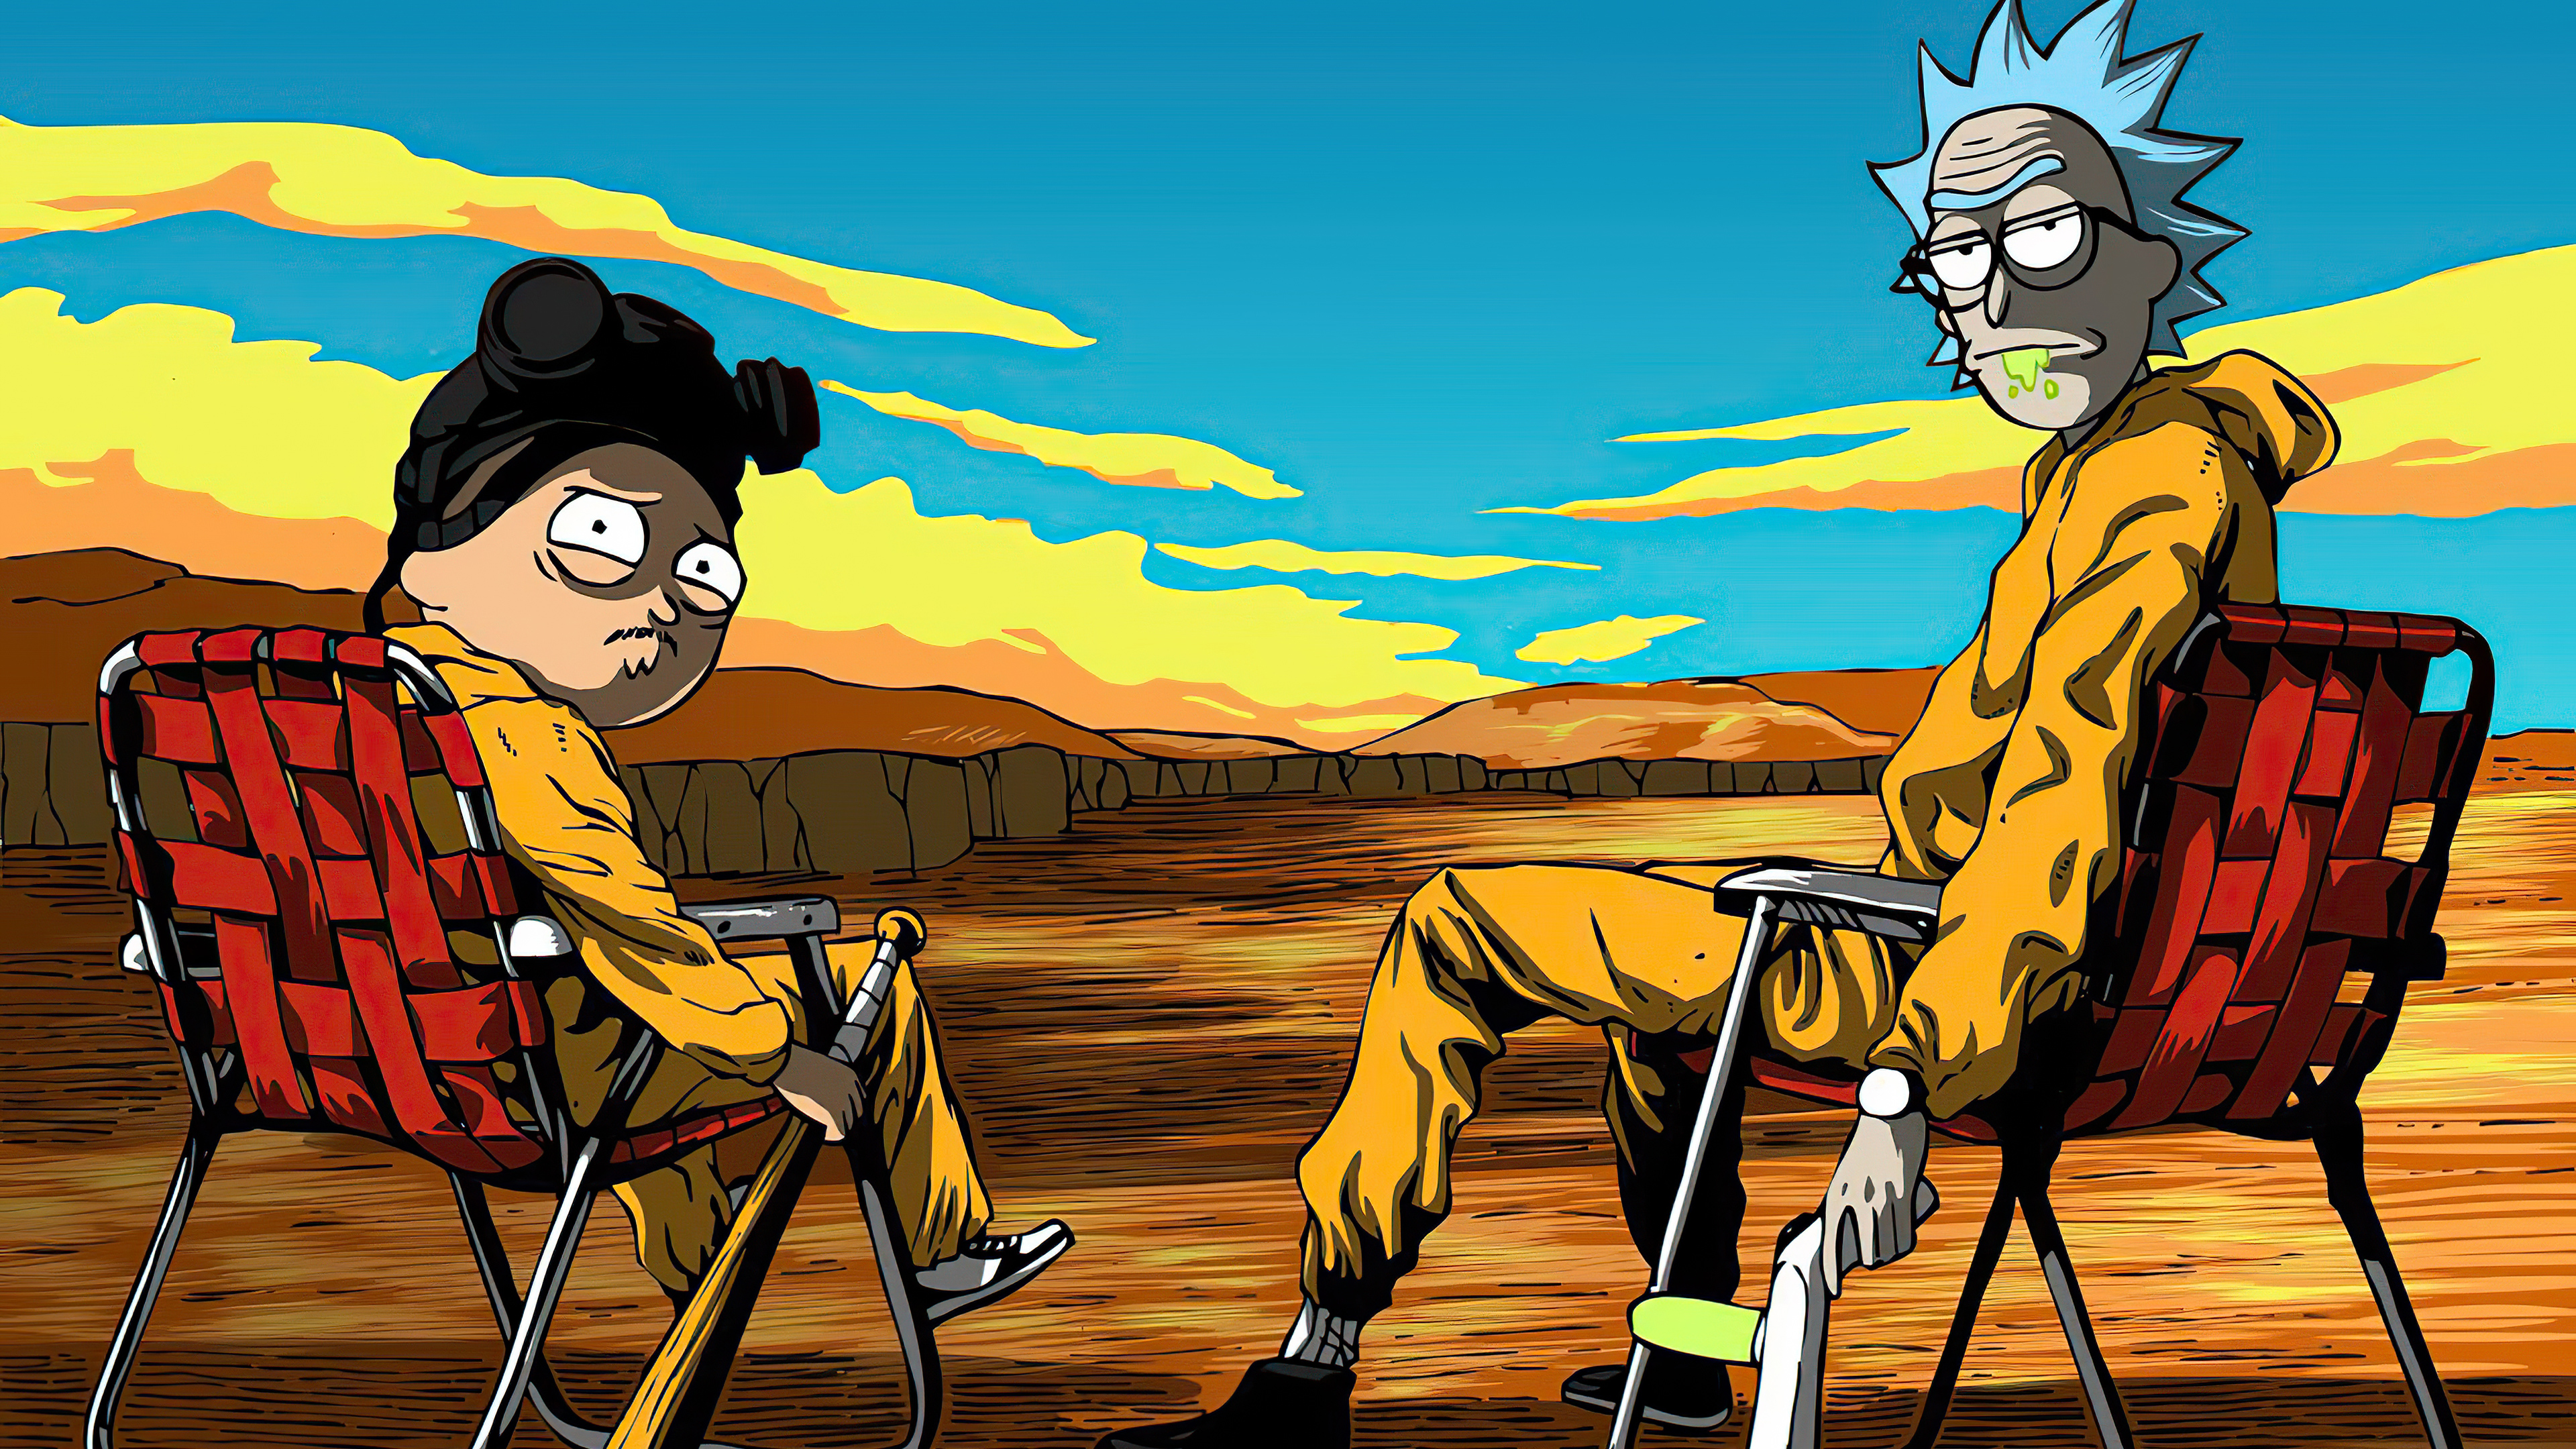 Rick and Morty as Breaking Bad Wallpaper 4k Ultra HD ID:5441